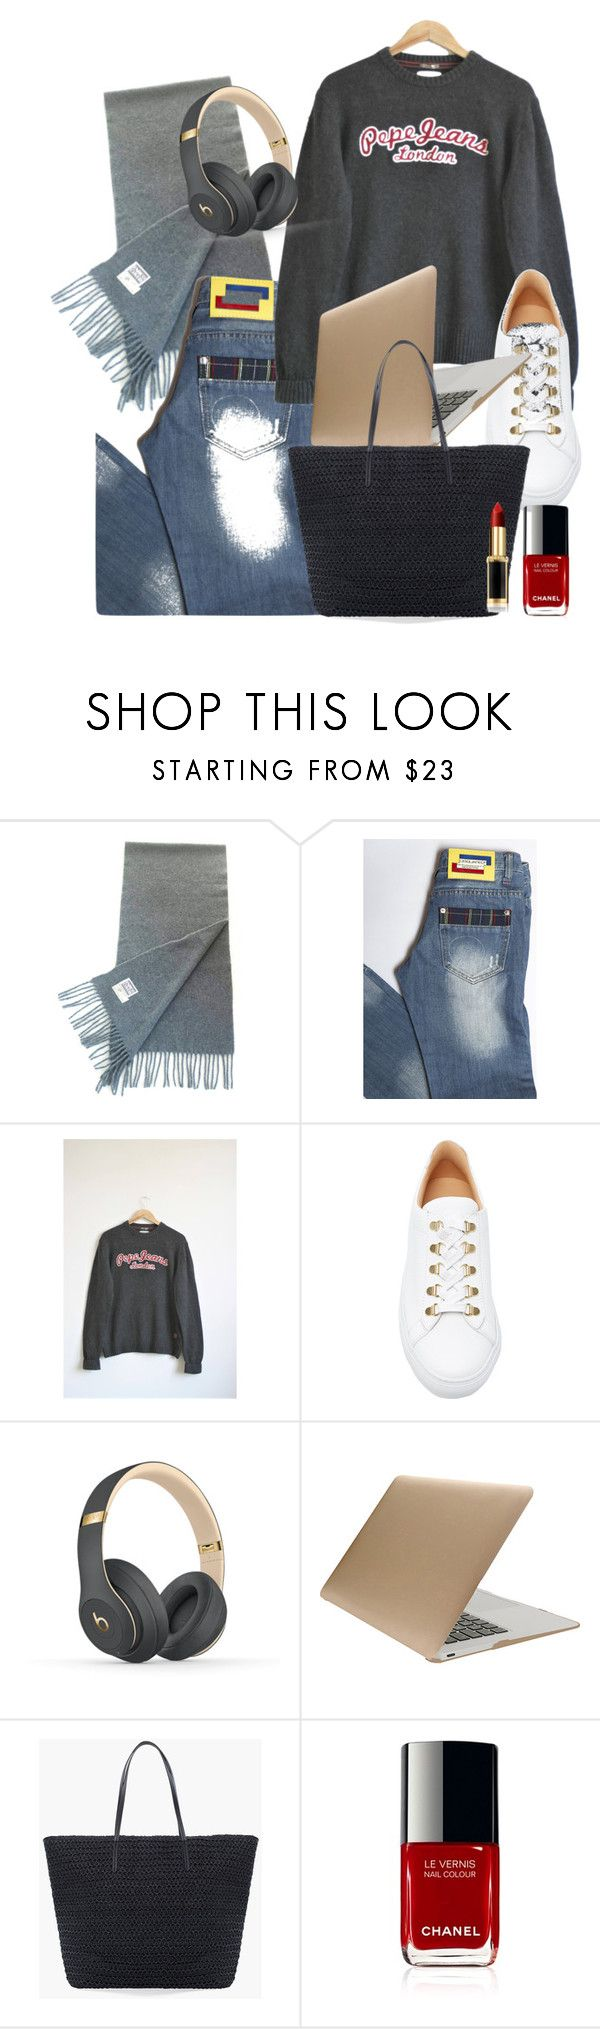 """""""students life"""" by mademoisellealbania on Polyvore featuring ENRICO COVERI, Dsquared2, Pepe Jeans London, Koio, Beats by Dr. Dre, Tucano, Chico's and L'Oréal Paris"""